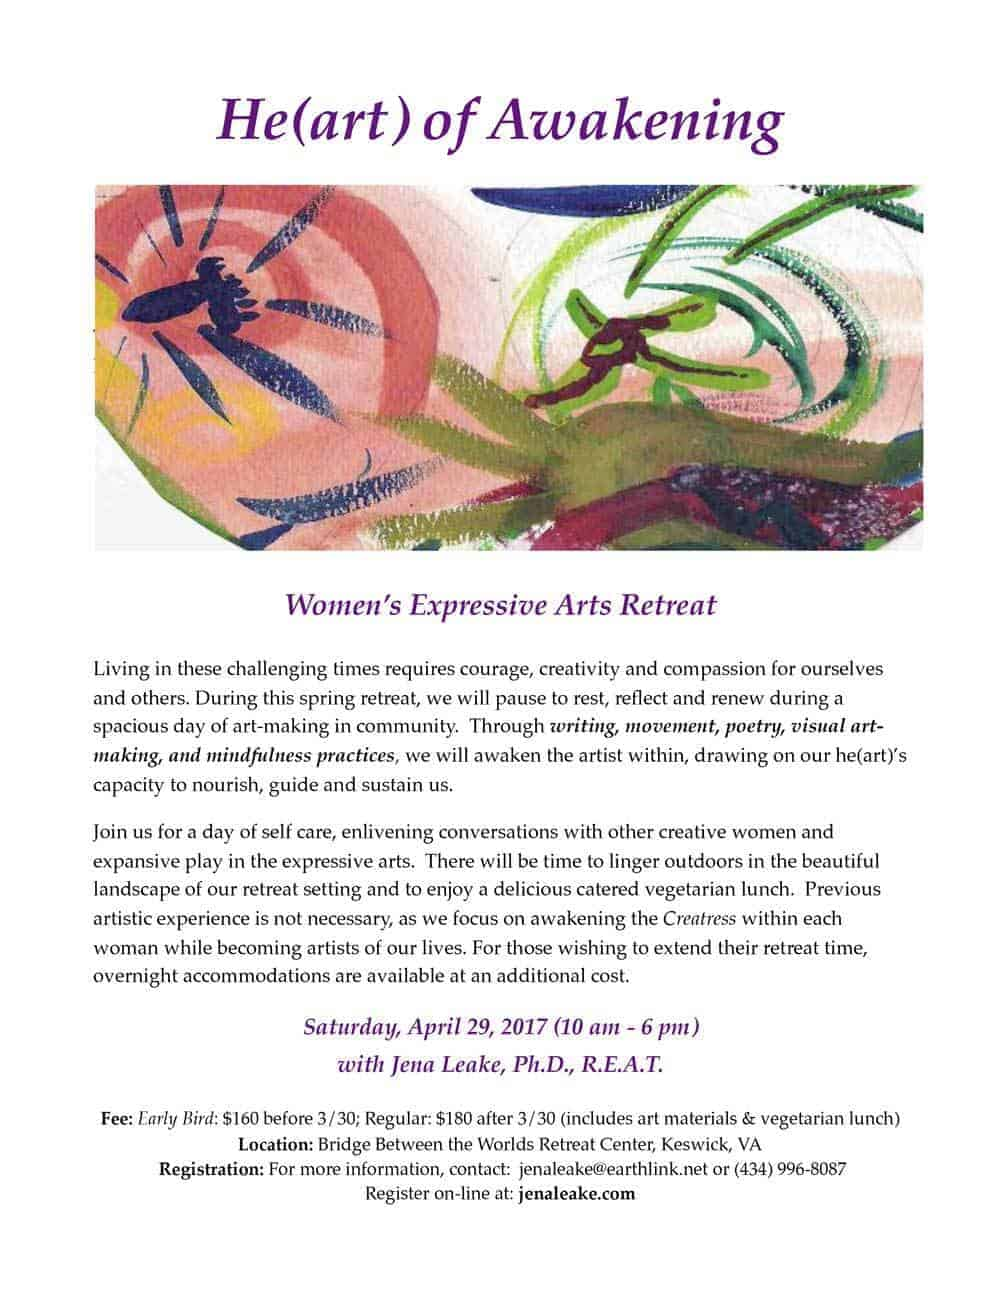 He(art) of Awakening Spring Women's Expressive Arts Retreat